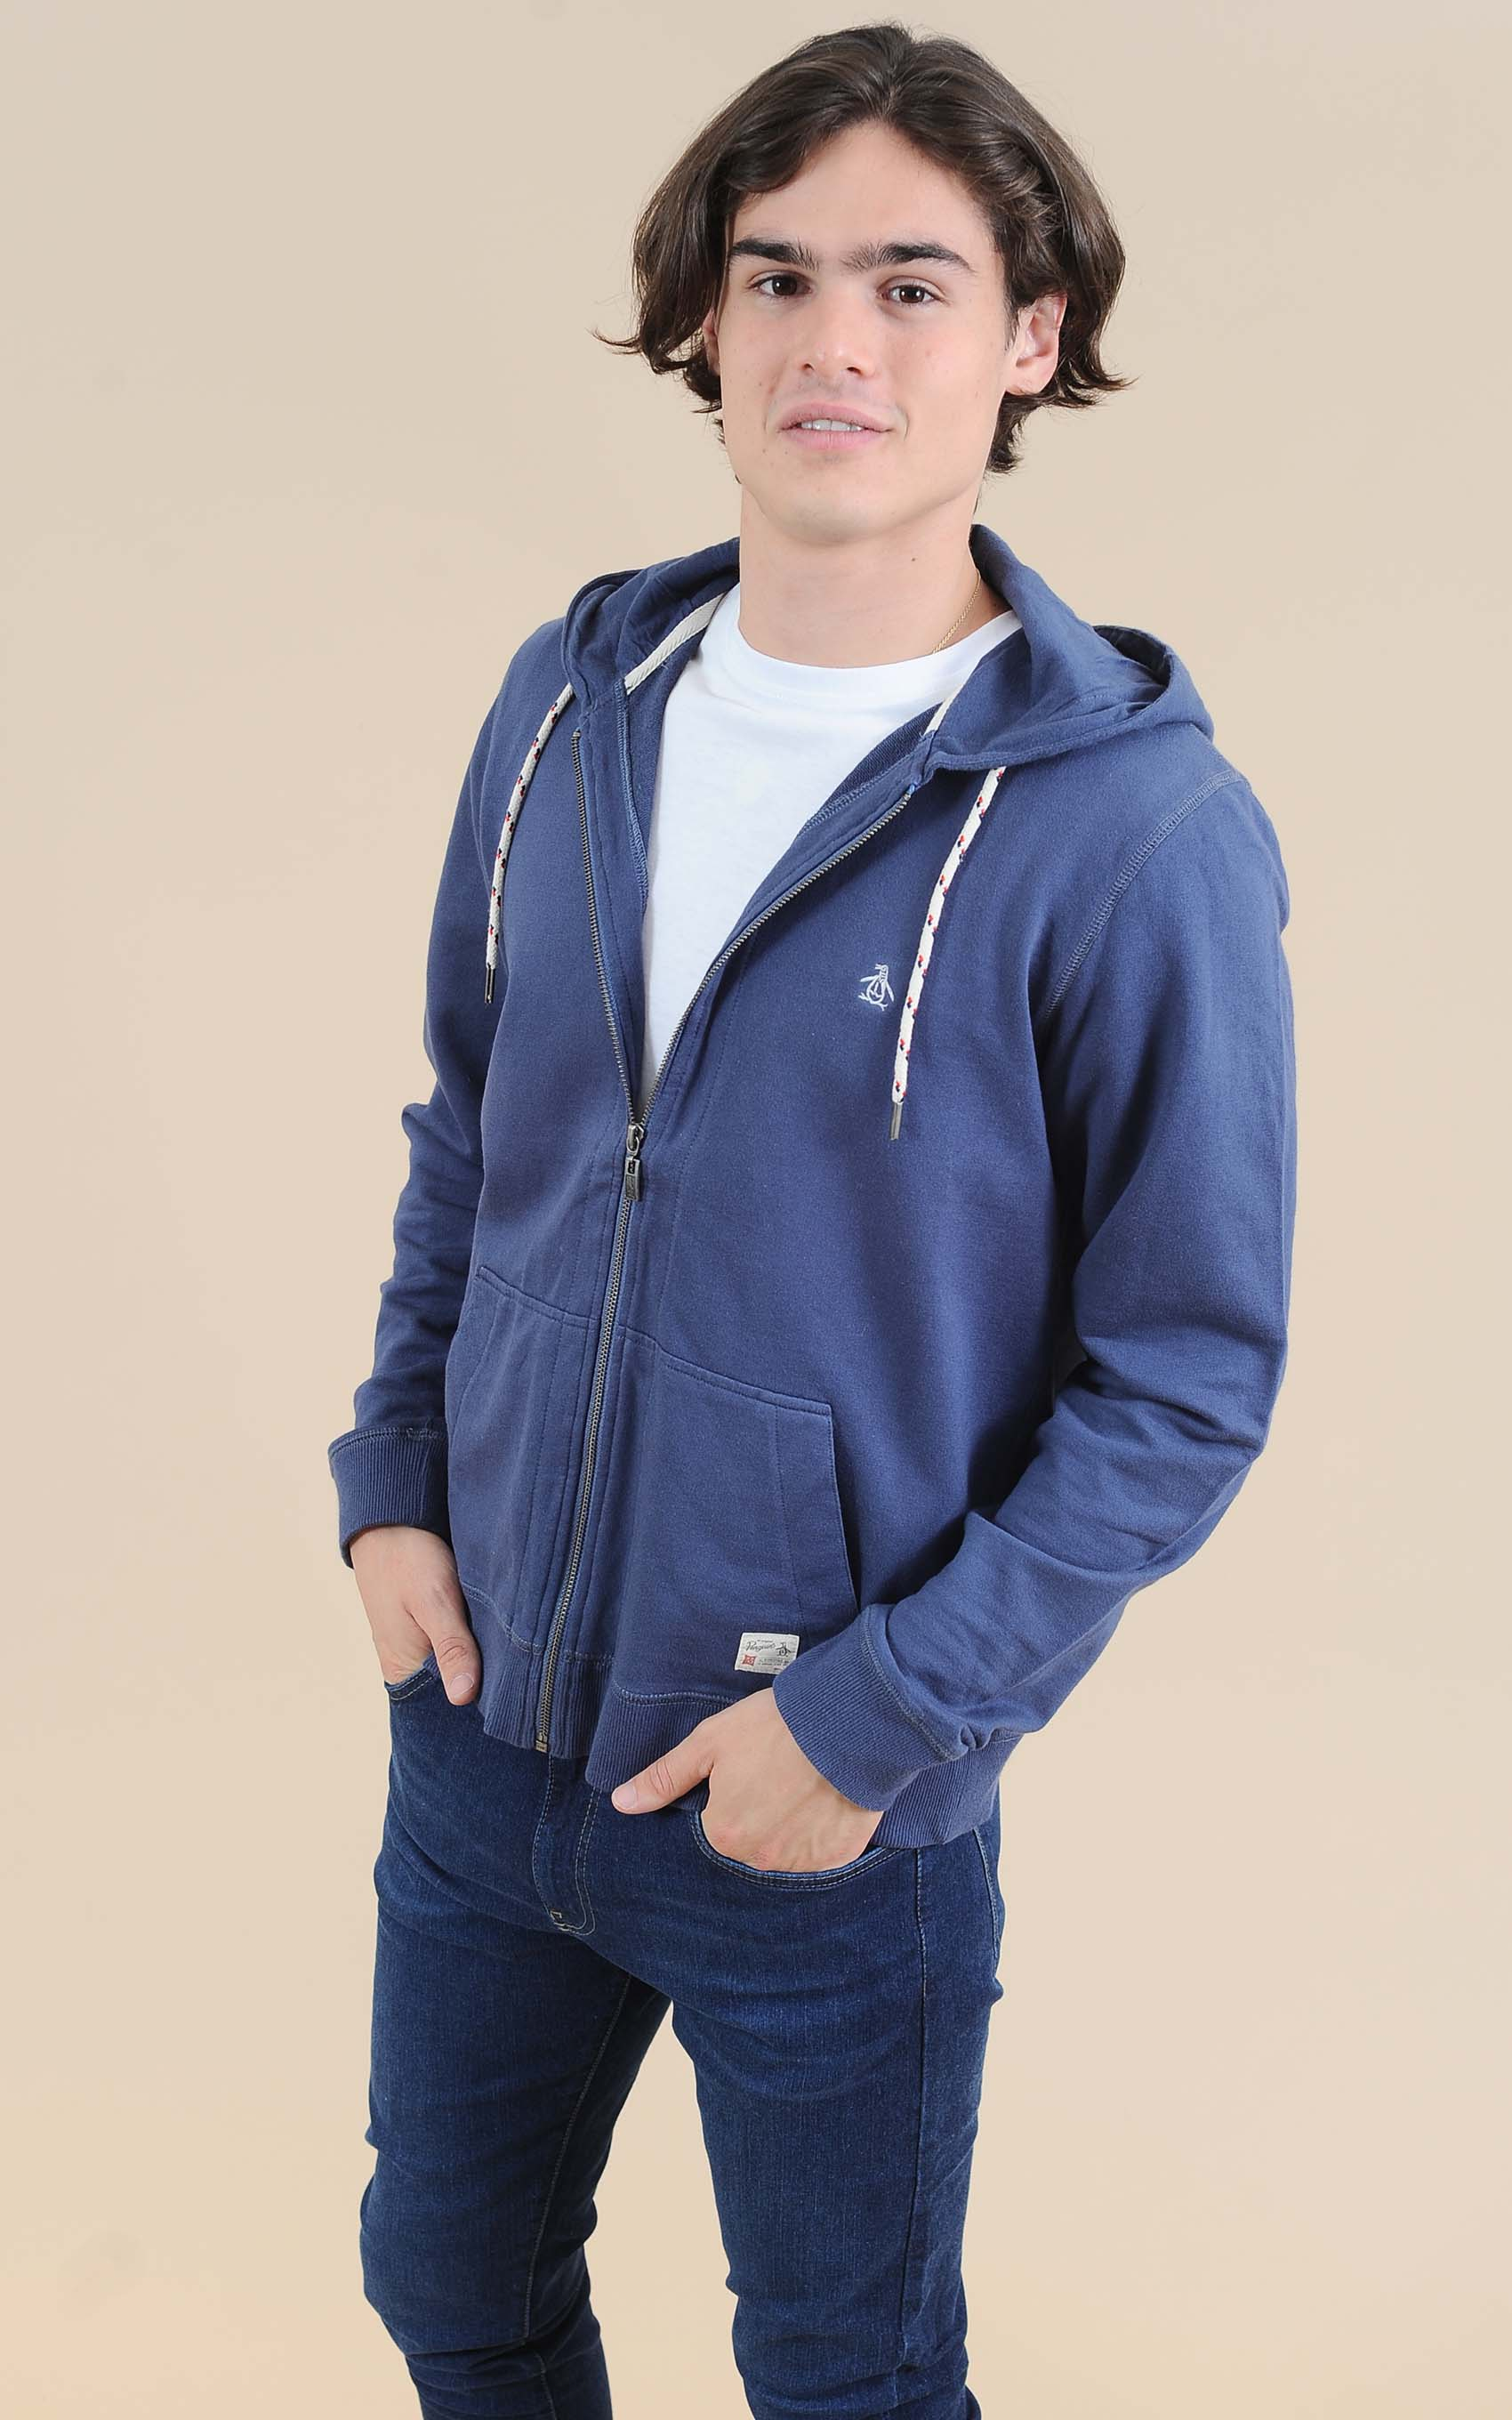 penguin_basic-hoody_43-18-2021__picture-17857